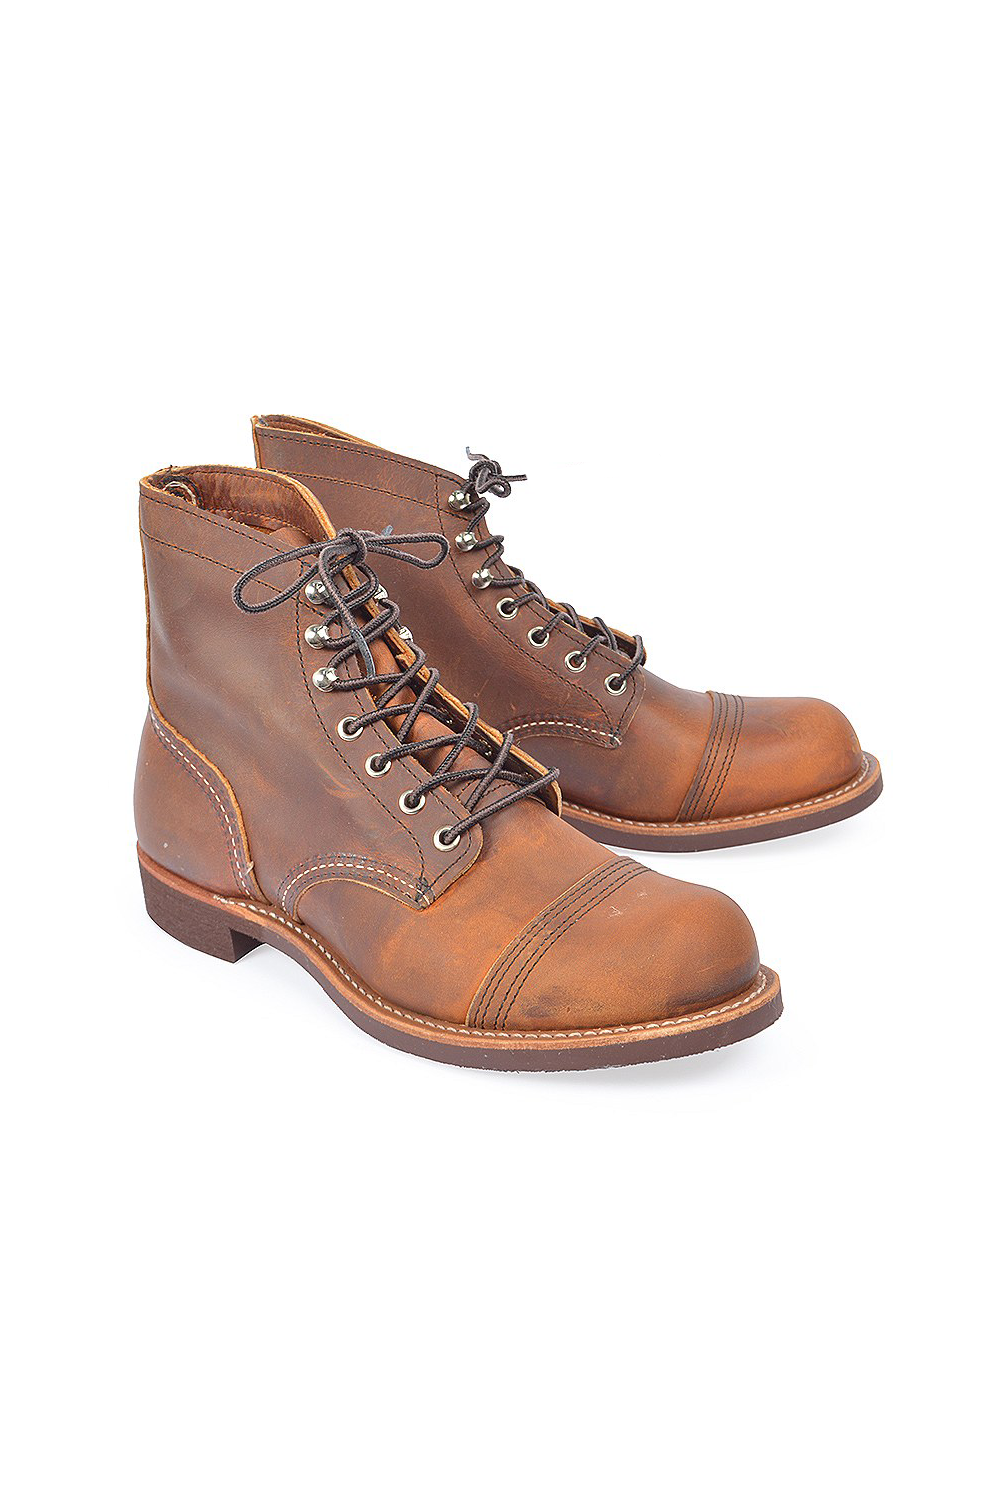 08d82045946 Men s Iron Ranger in Copper Rough   Tough from Red Wing Shoes